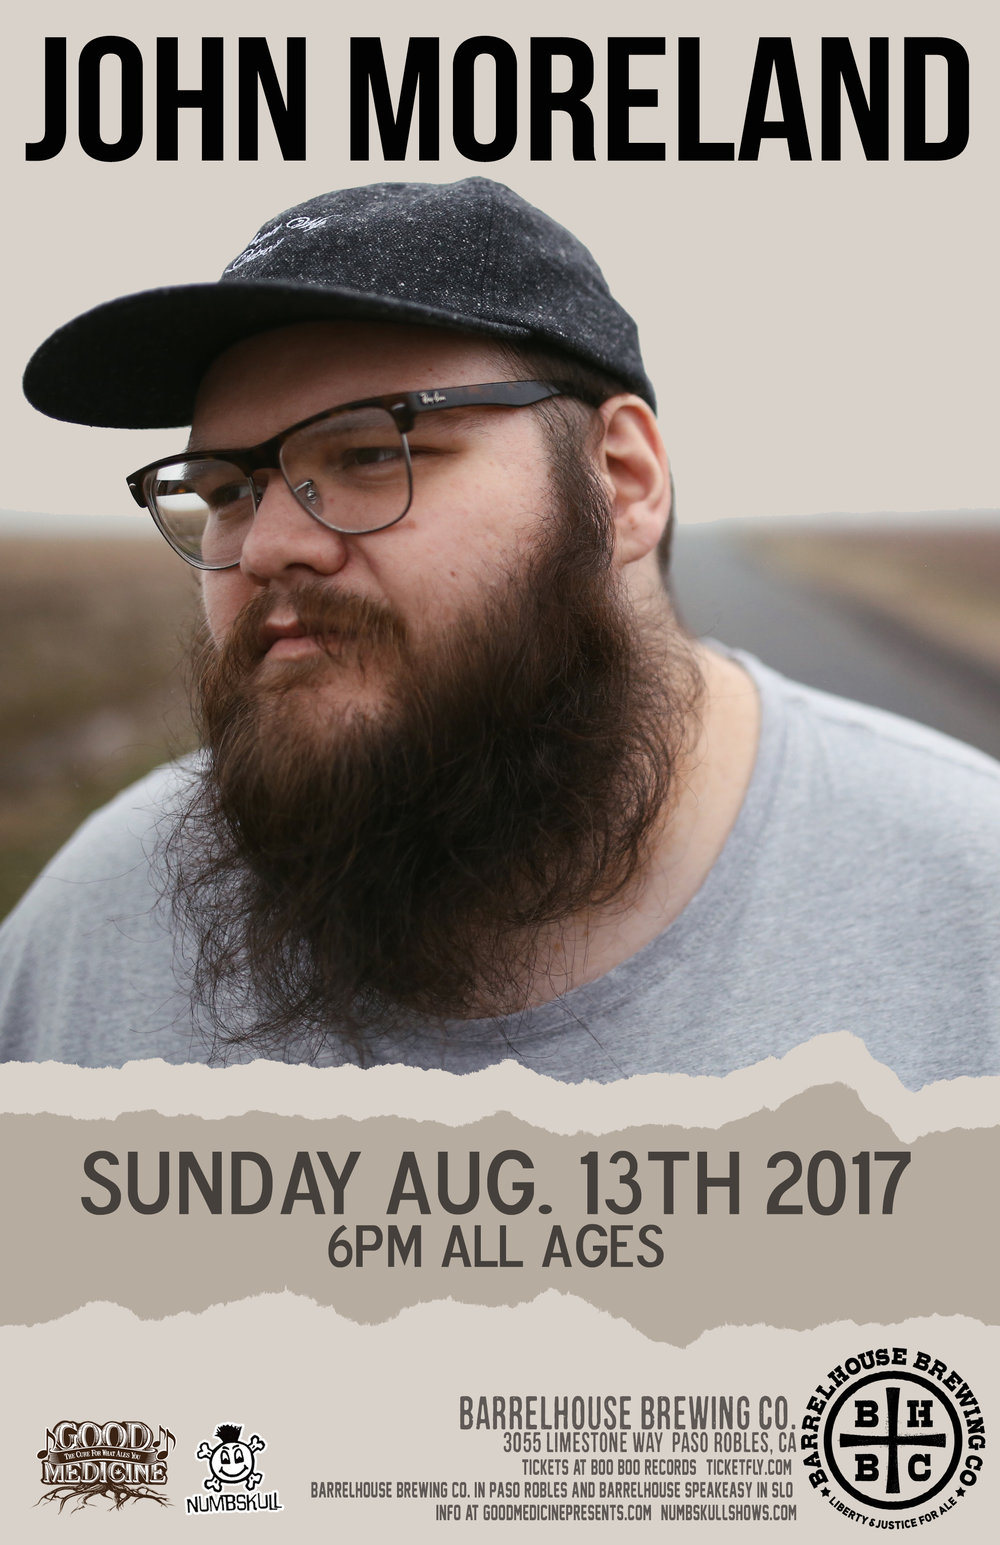 John Moreland BarrelHouse Brewing Co. - Paso Robles Sunday Aug. 13th - 6pm $15/20 - All Ages  Ticketing Link:  https://www.ticketfly.com/purchase/event/1471787